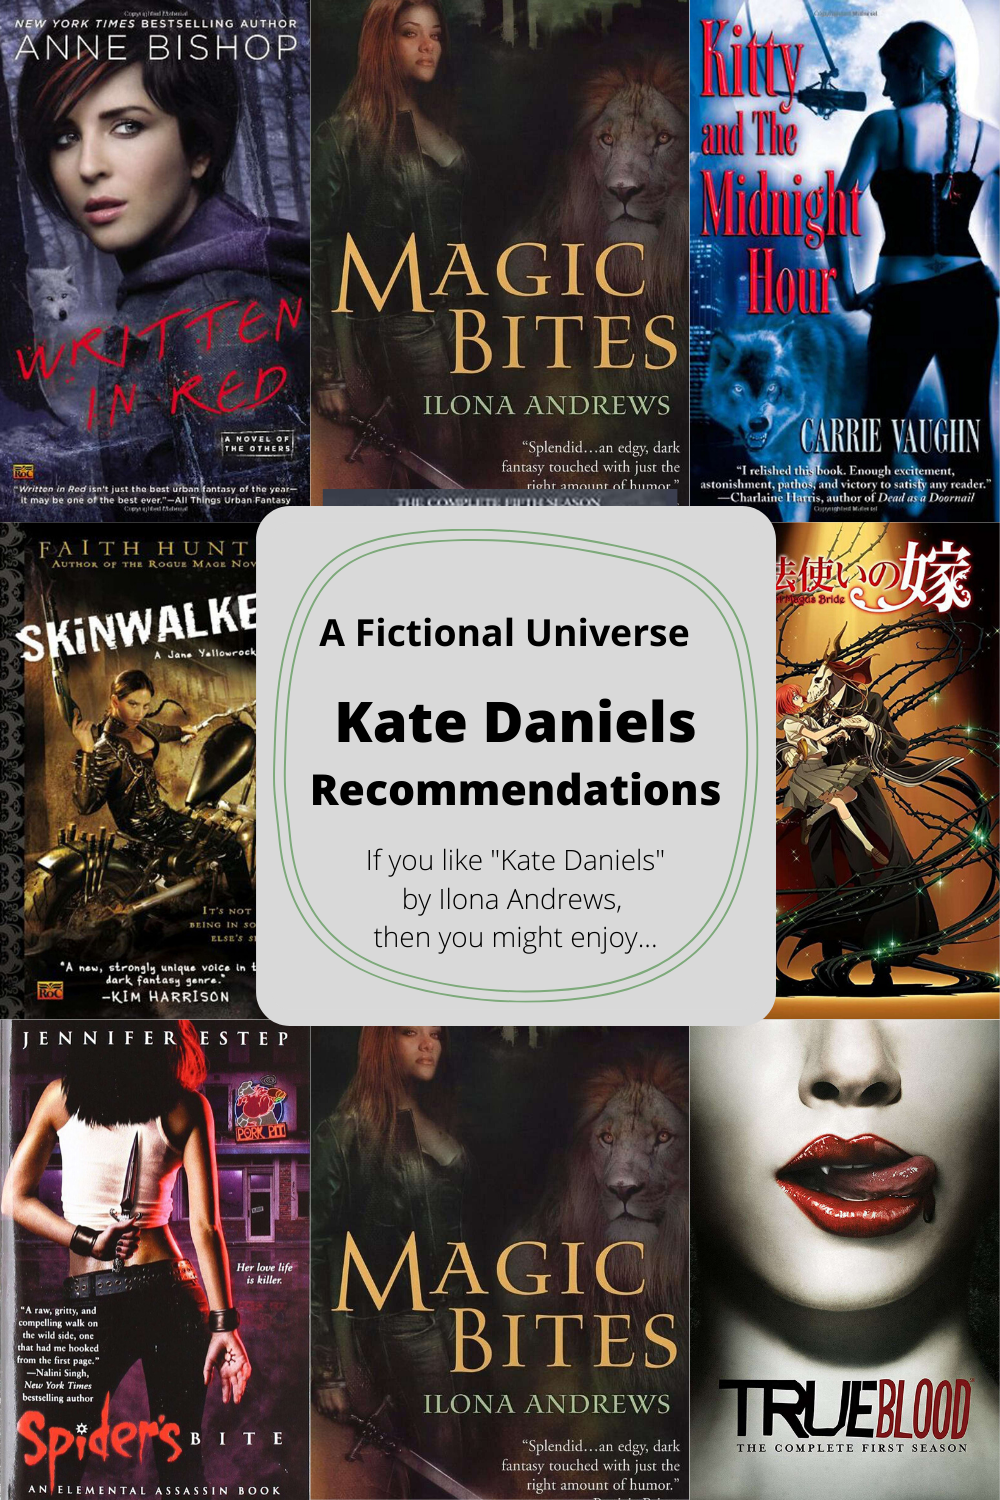 Kate Daniels Recommendations Article Image